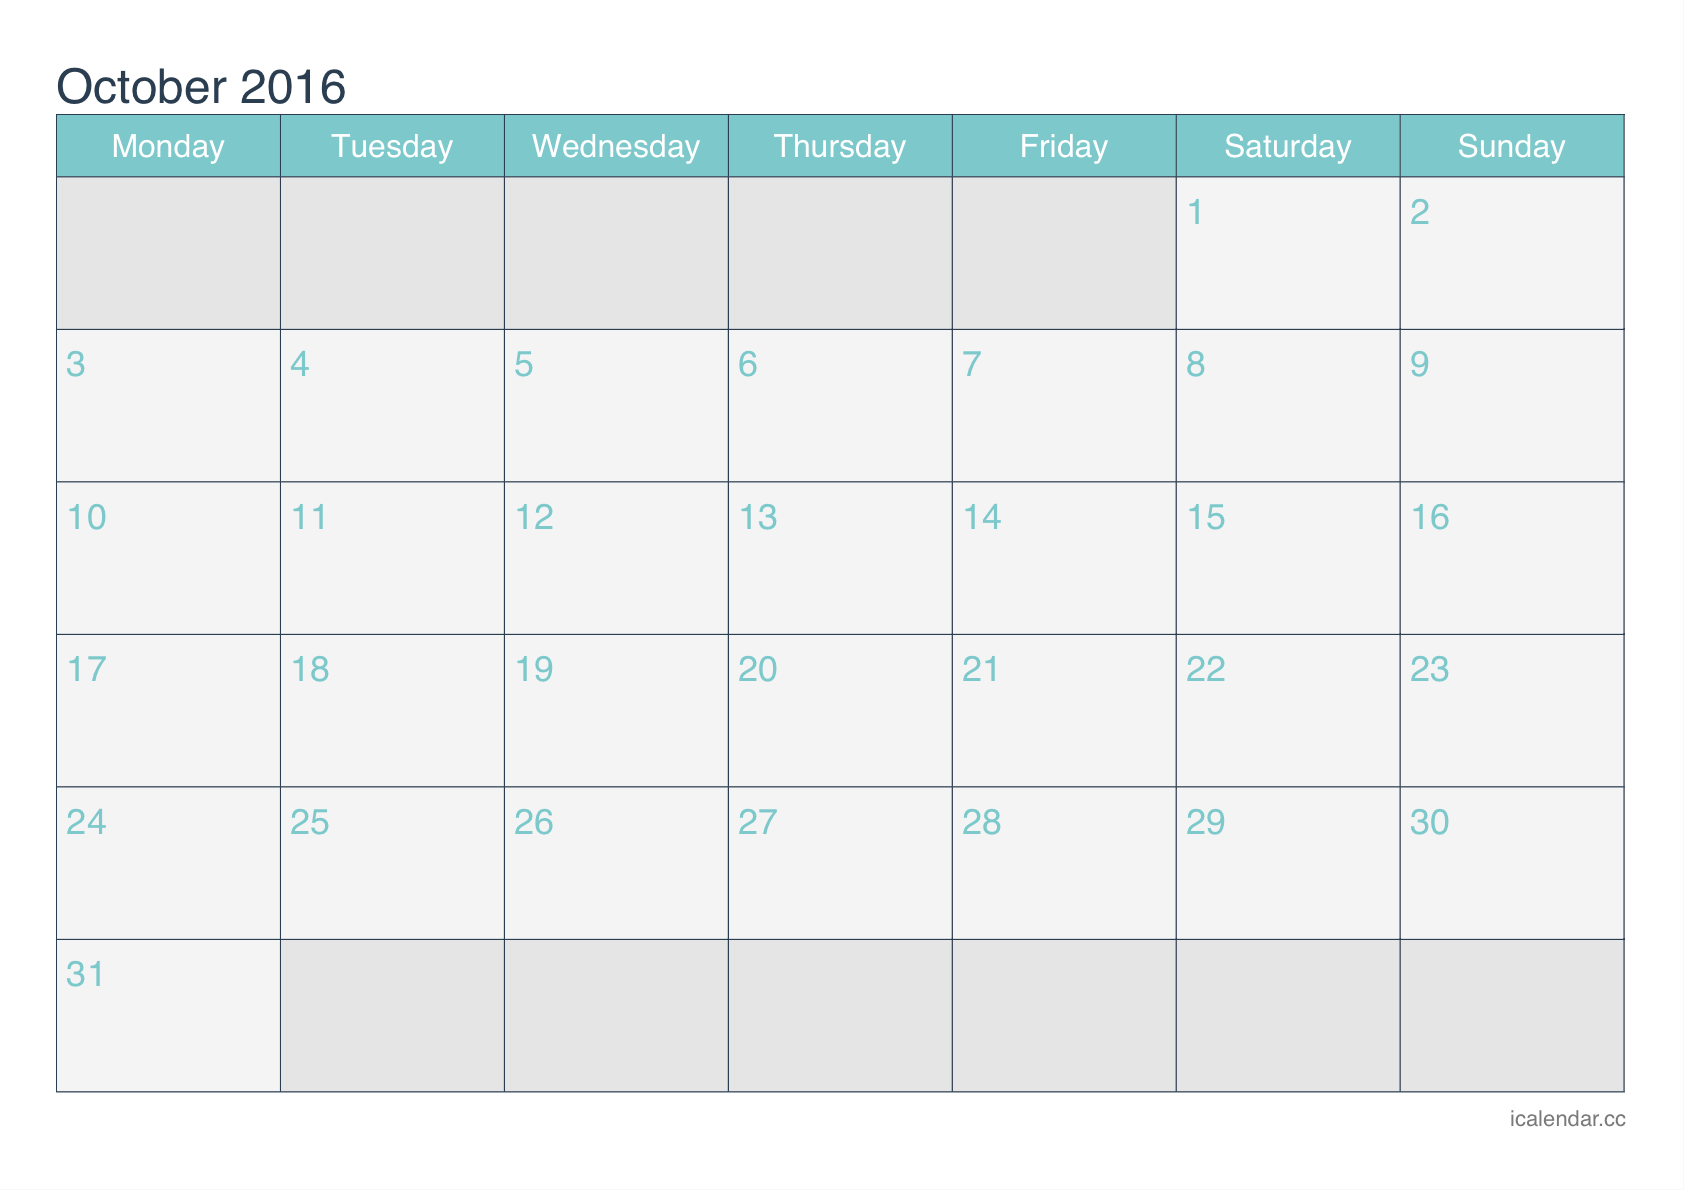 Monday Friday Calendar 2016 | Calendar Template 2016